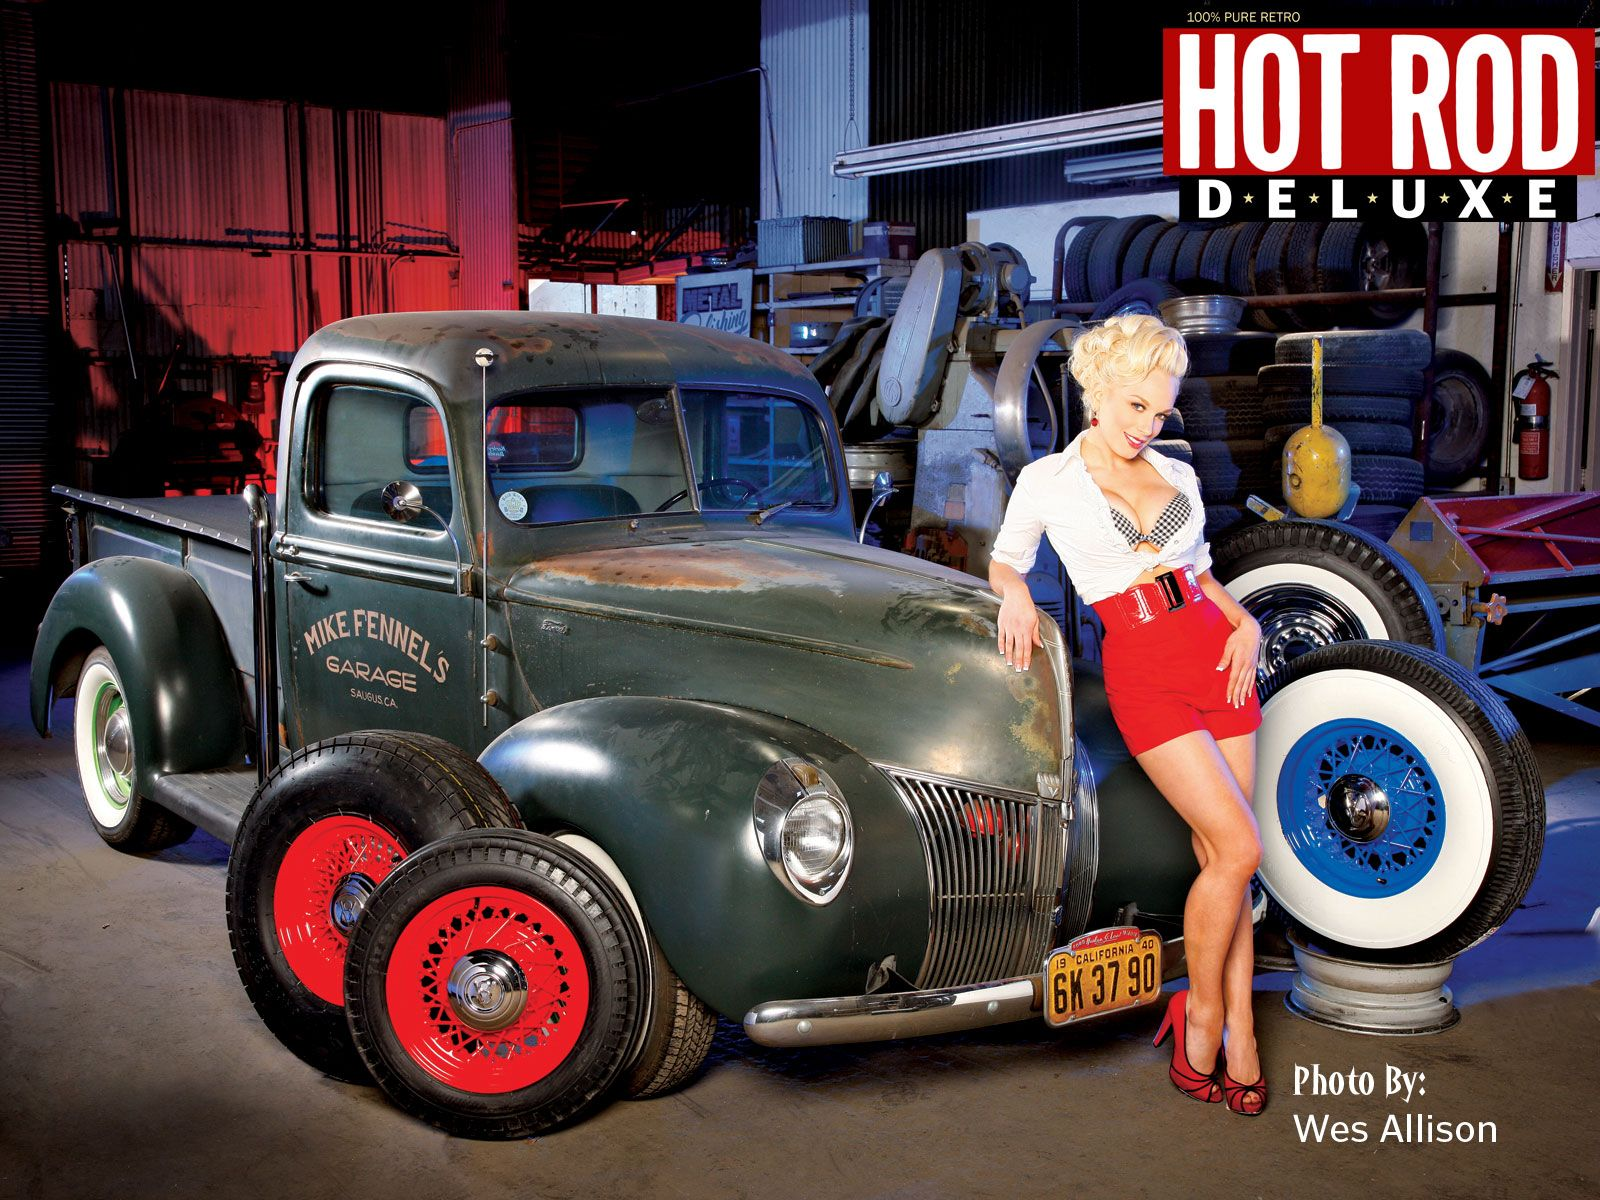 Hot Rod Cars New 2015 Muscle Cars   Hot Rod Network 1600x1200